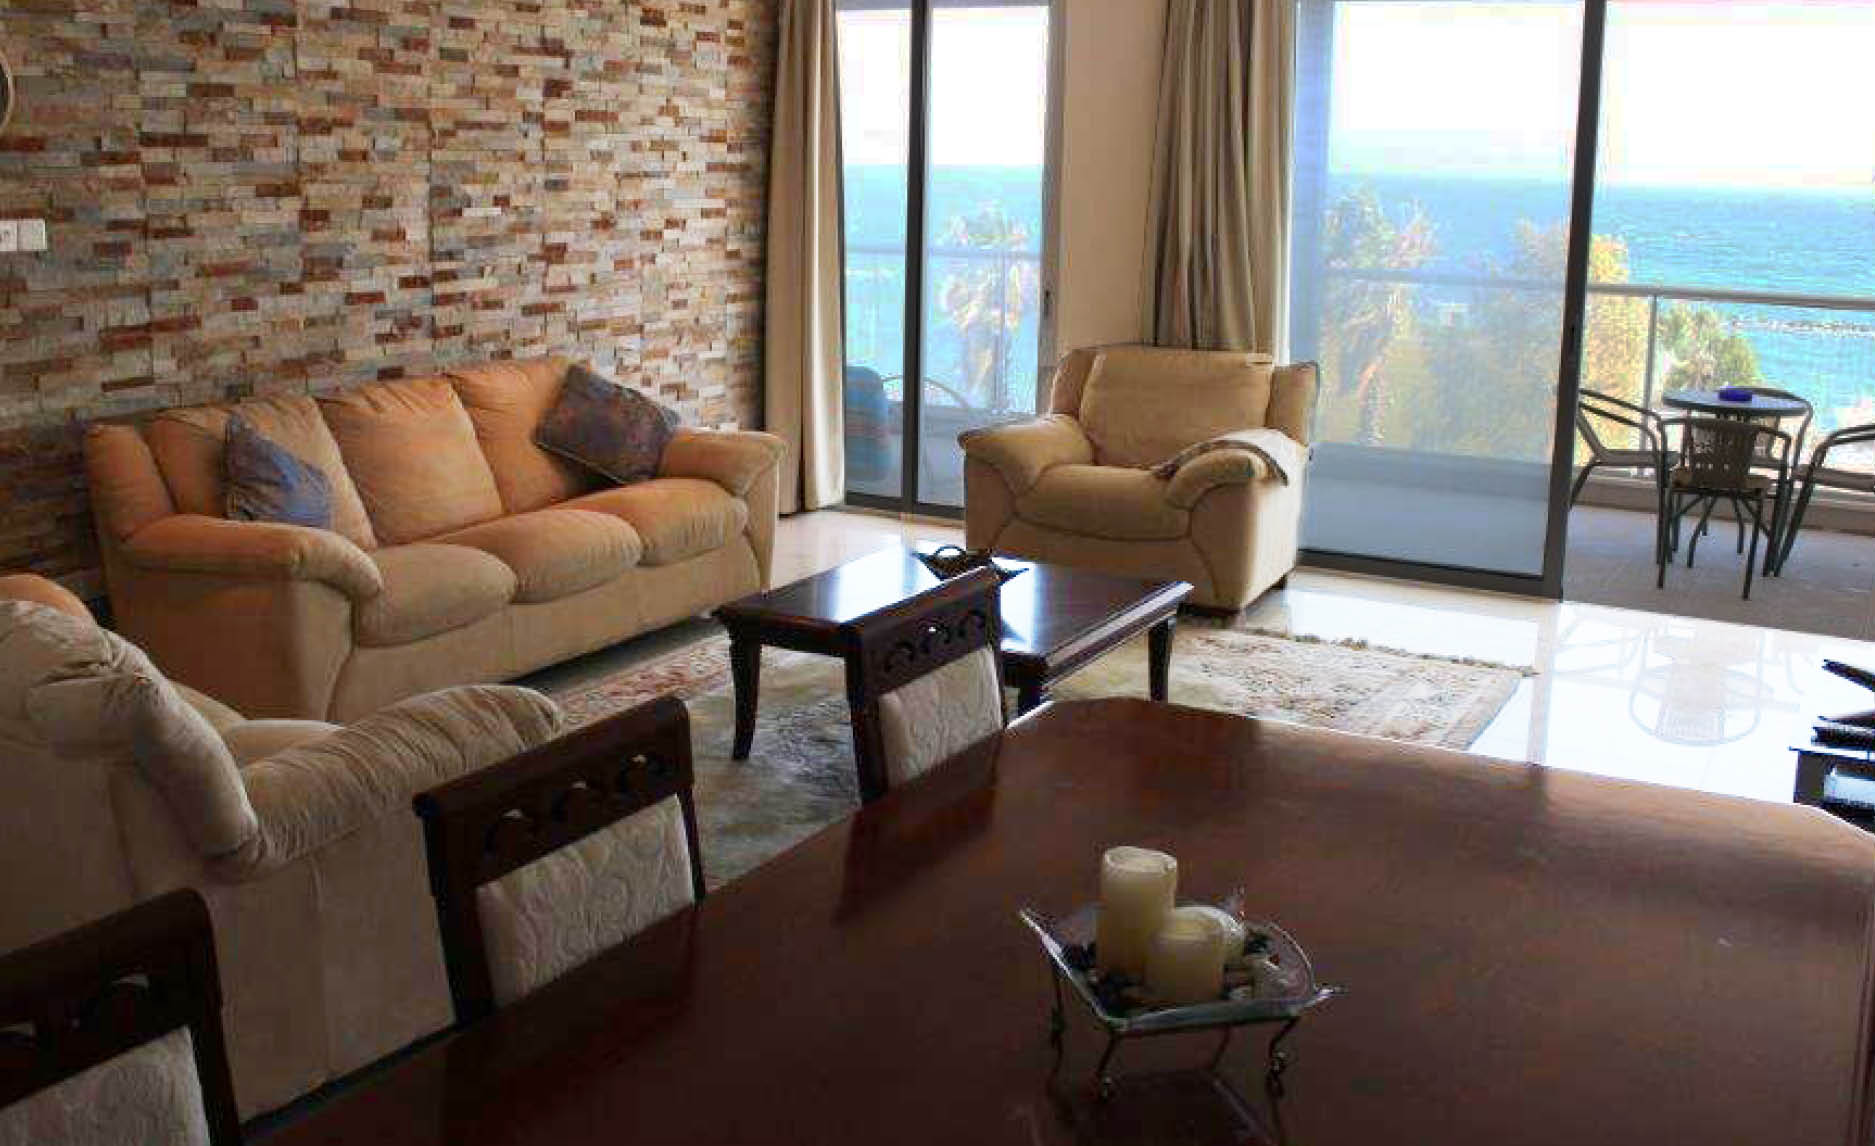 3 bedroom sea view apartment for sale in the tourist area - 3 bedroom apartments for sale nyc ...